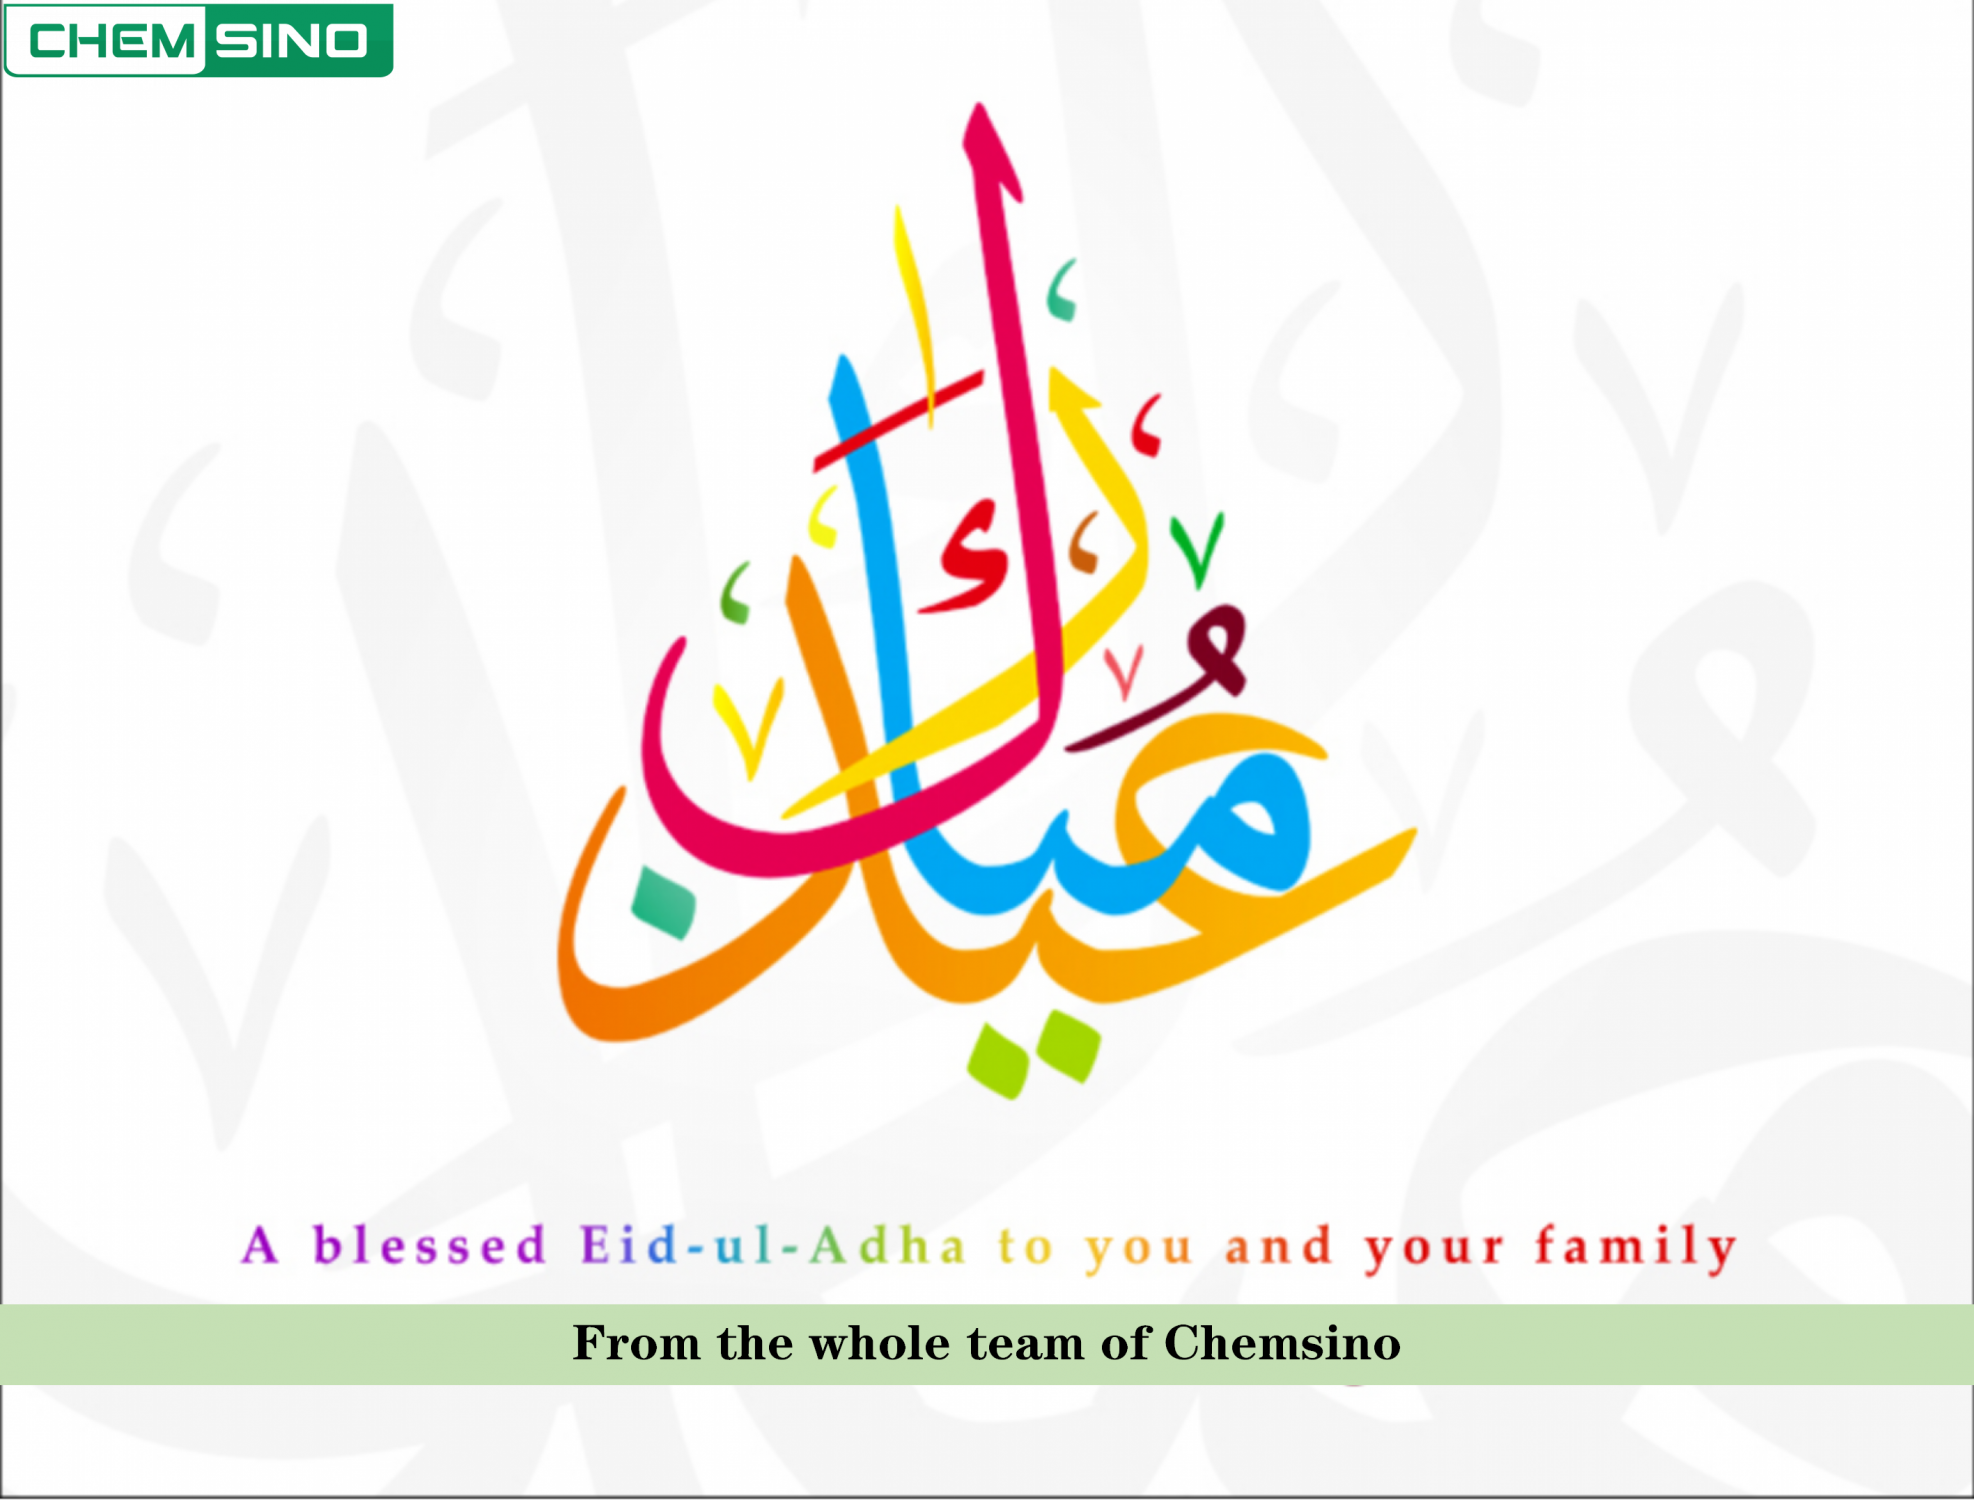 Eid Mubarak to all. Chemsino wishes this Eid brings happiness and prosperity to you and your family.